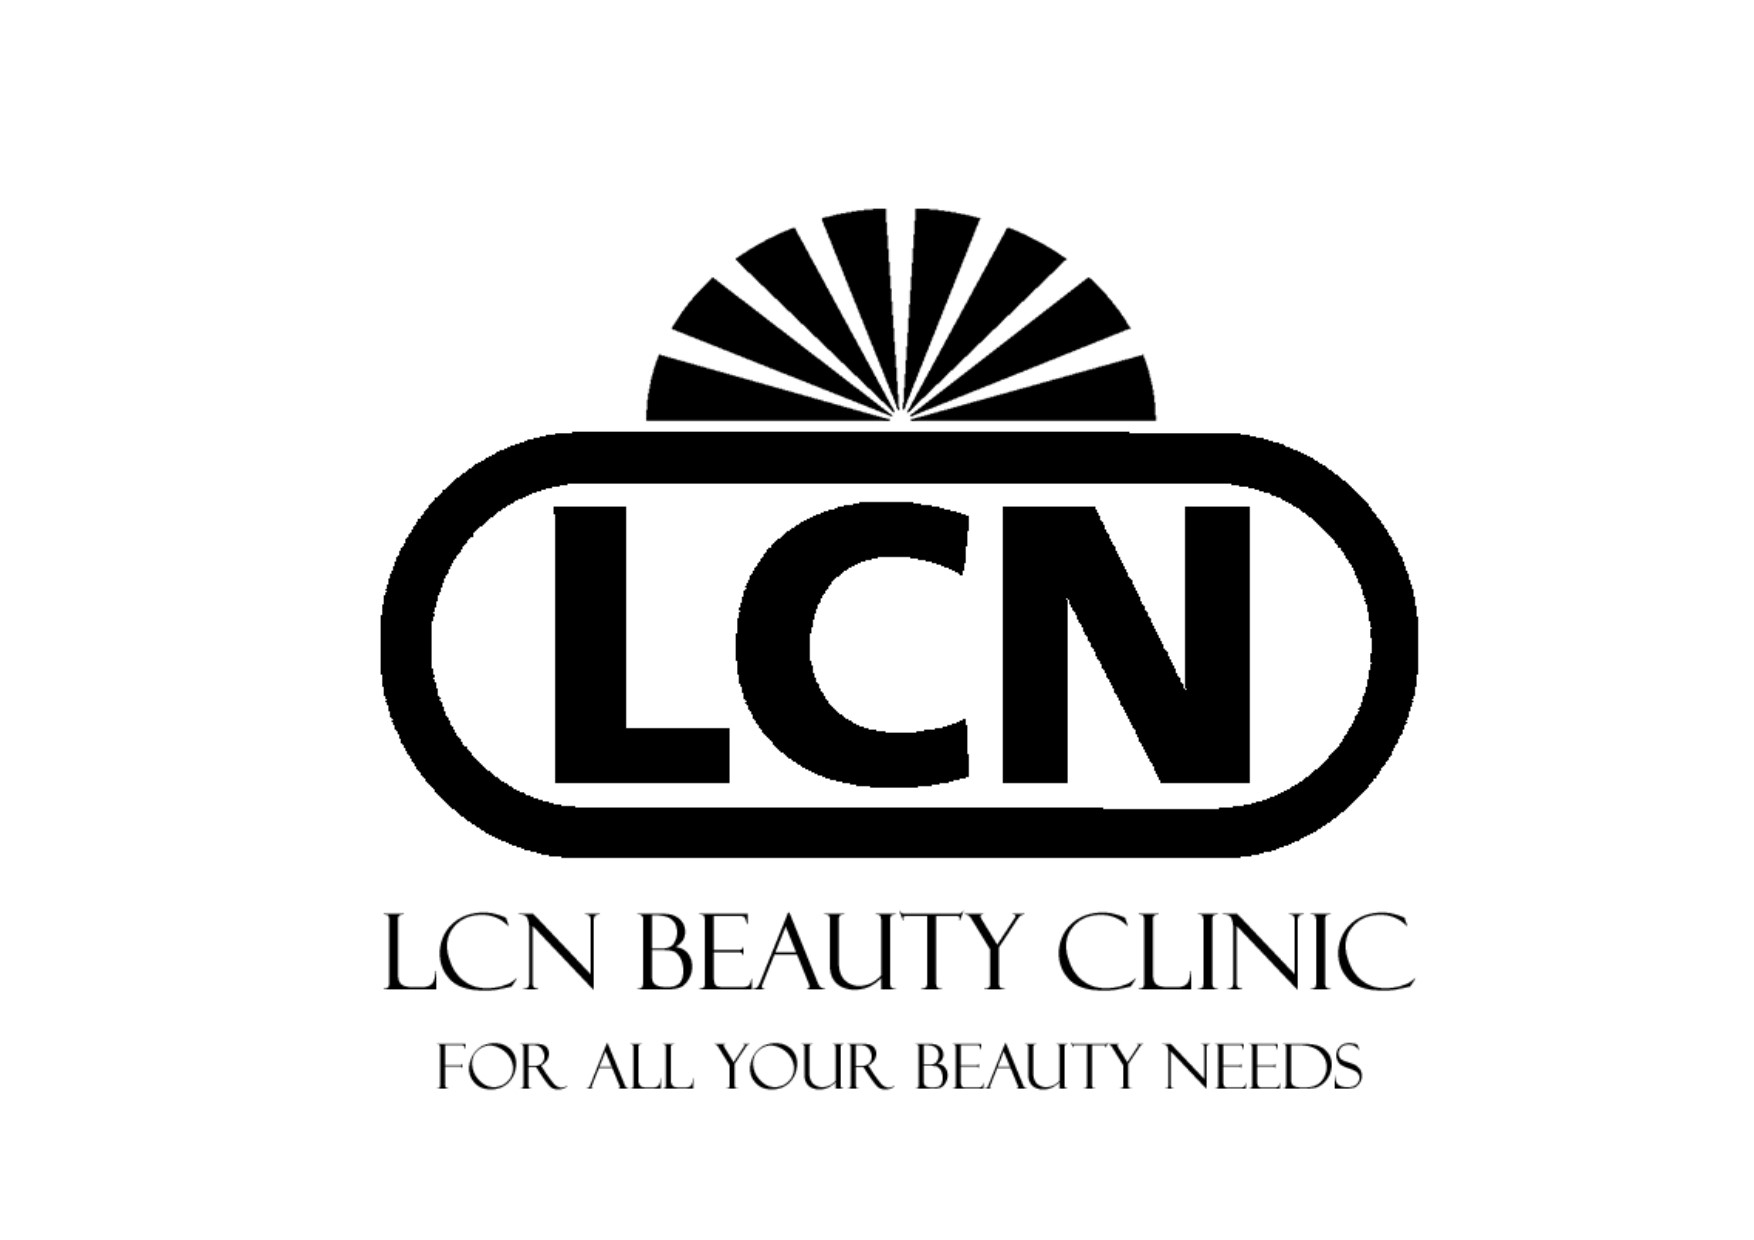 LCN Beauty Clinic